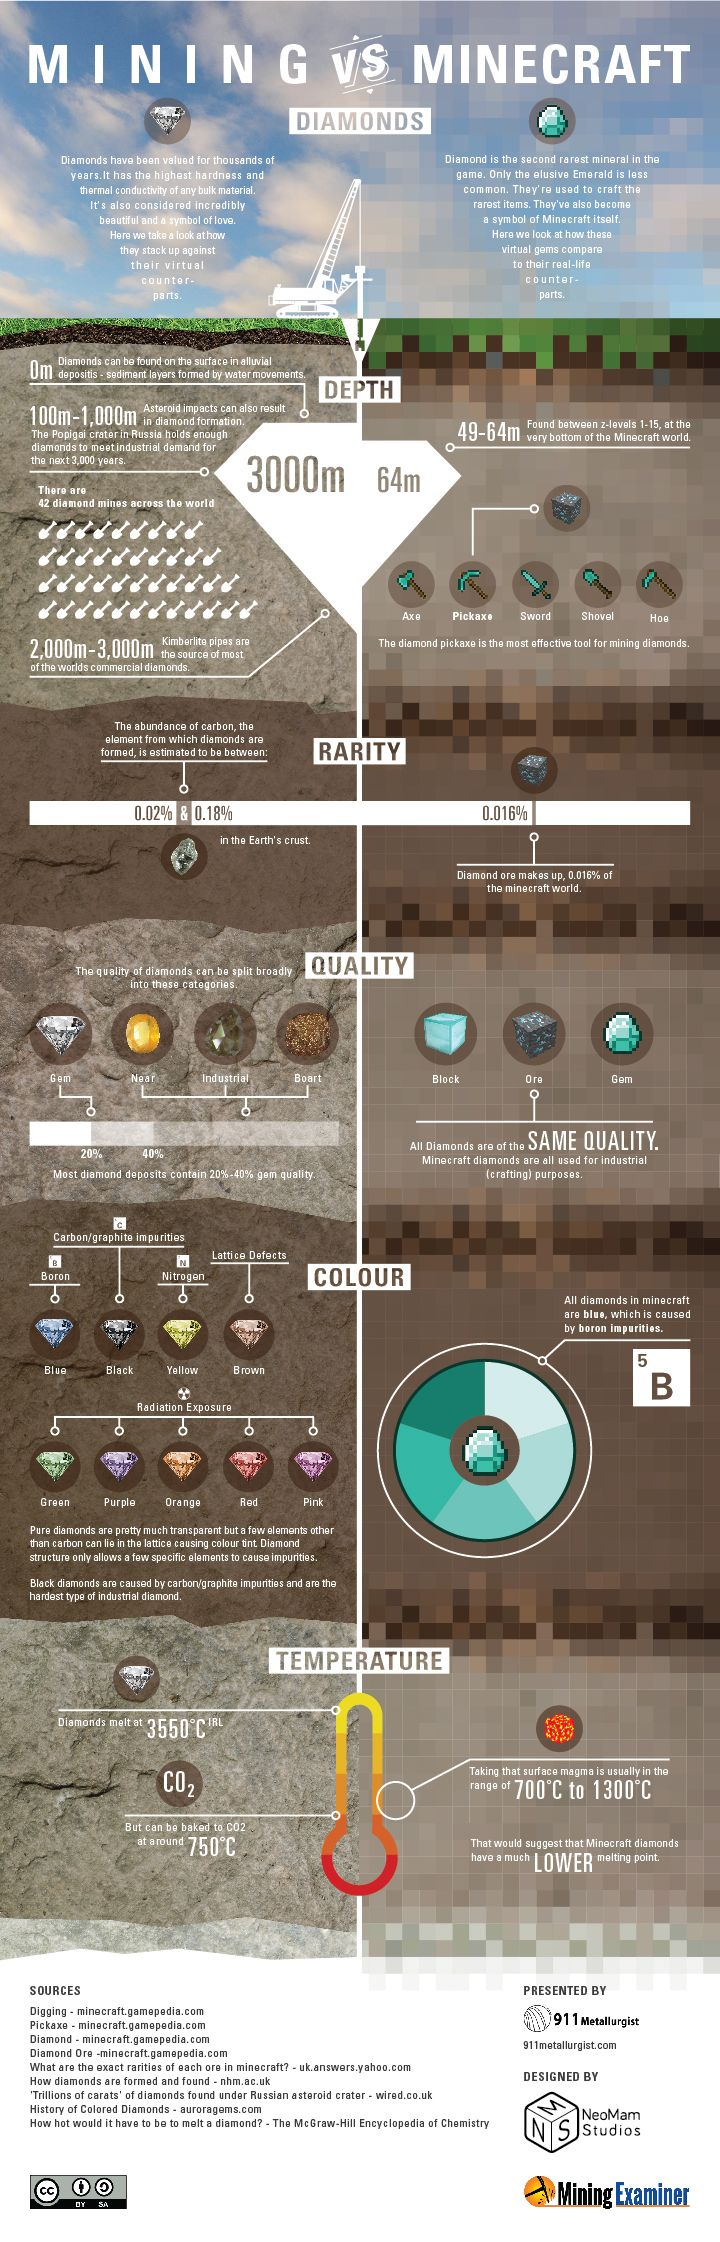 How Does Mining Diamonds In Minecraft Compare To Real Life?   image